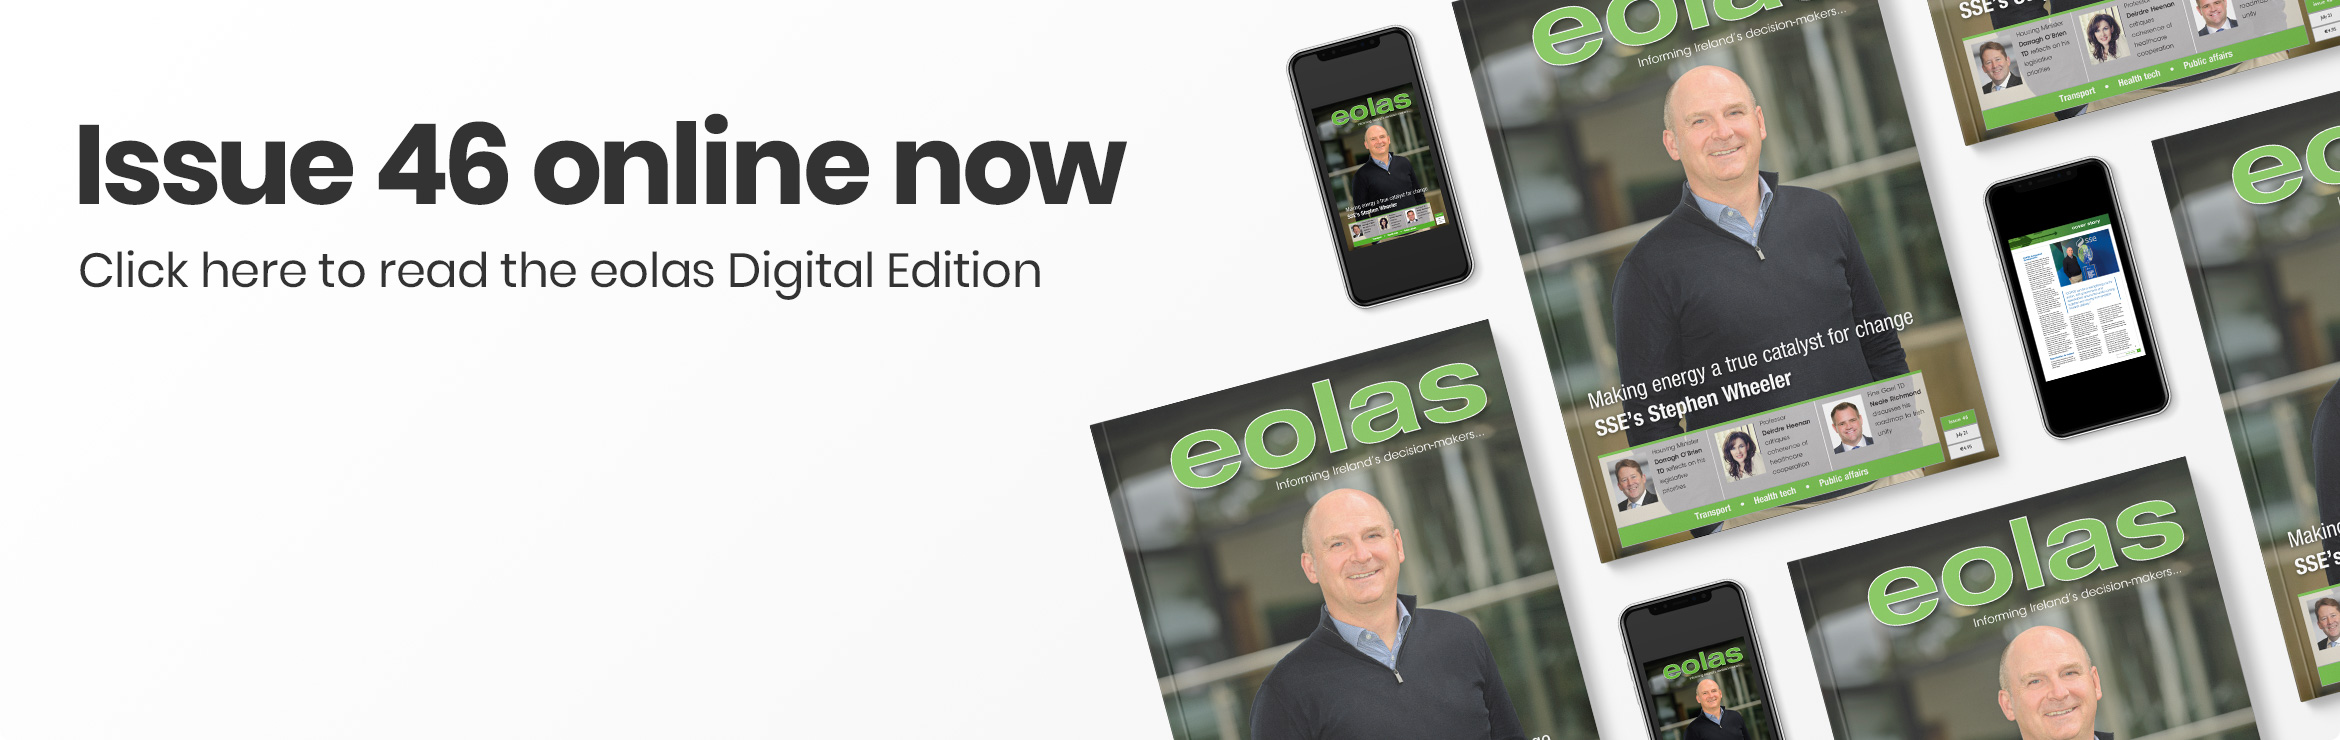 Issue 46 online now • Read the eolas Digital Edition